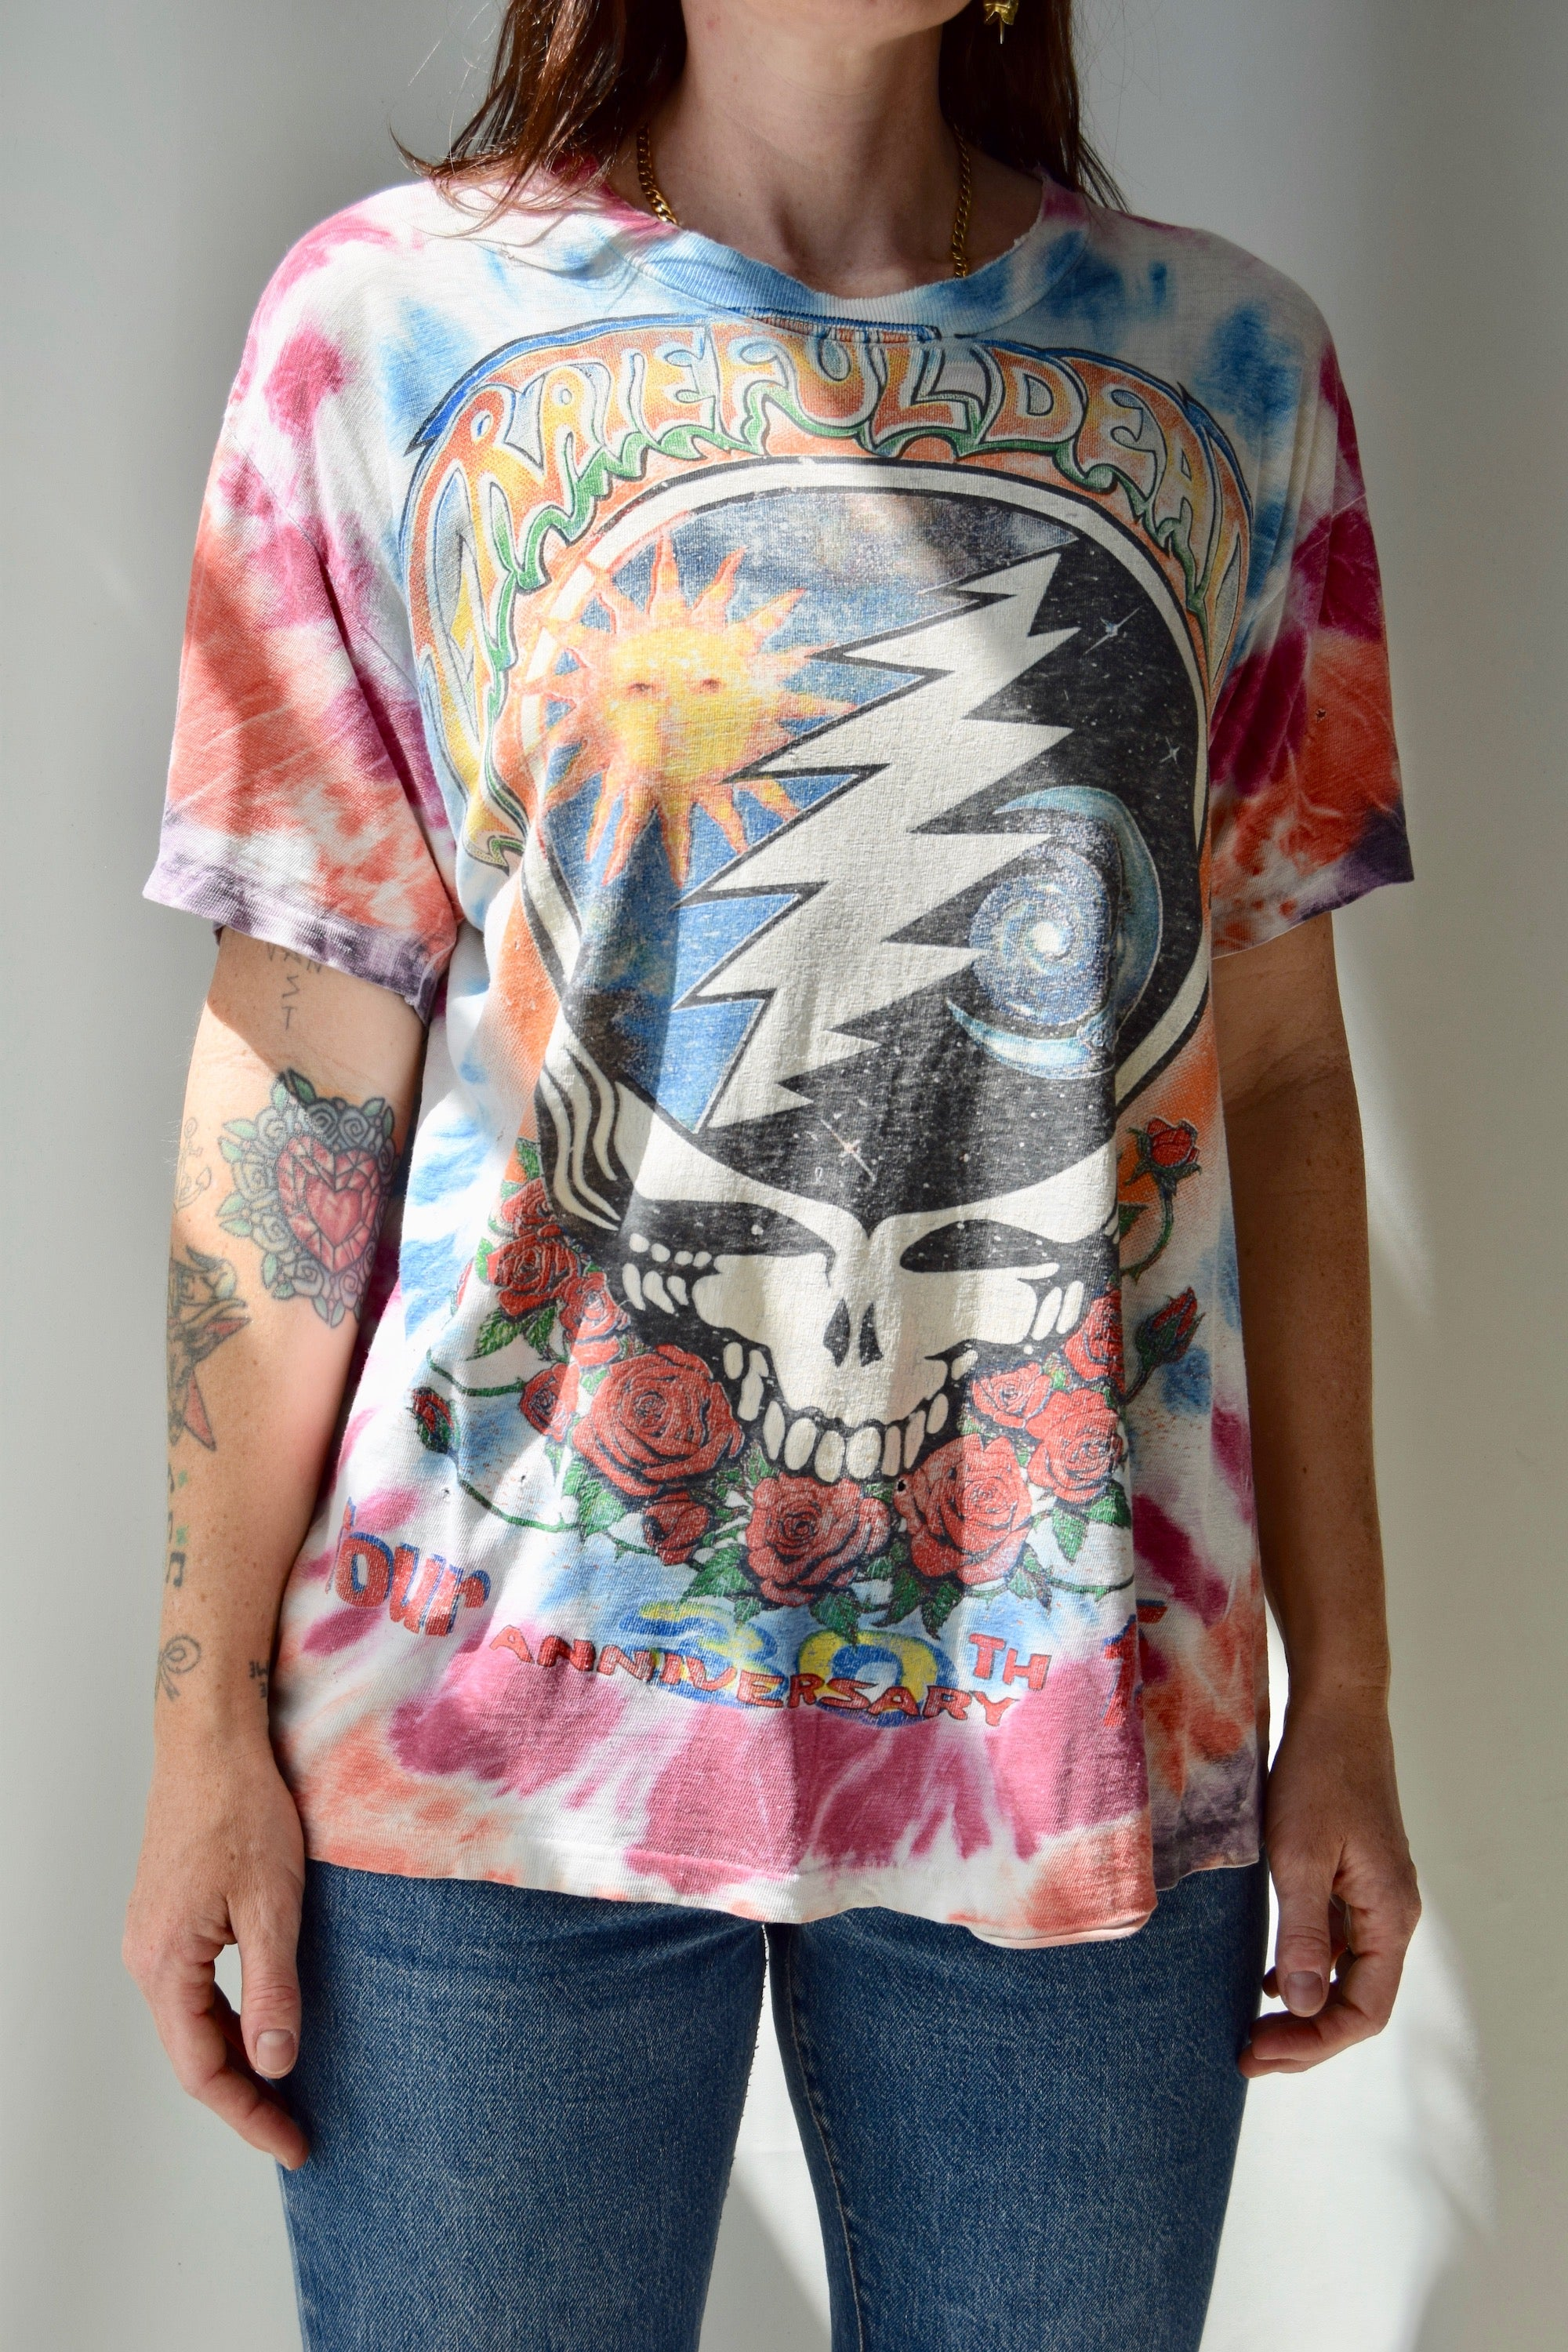 1995 Grateful Dead 30th Anniversary Tour T-Shirt